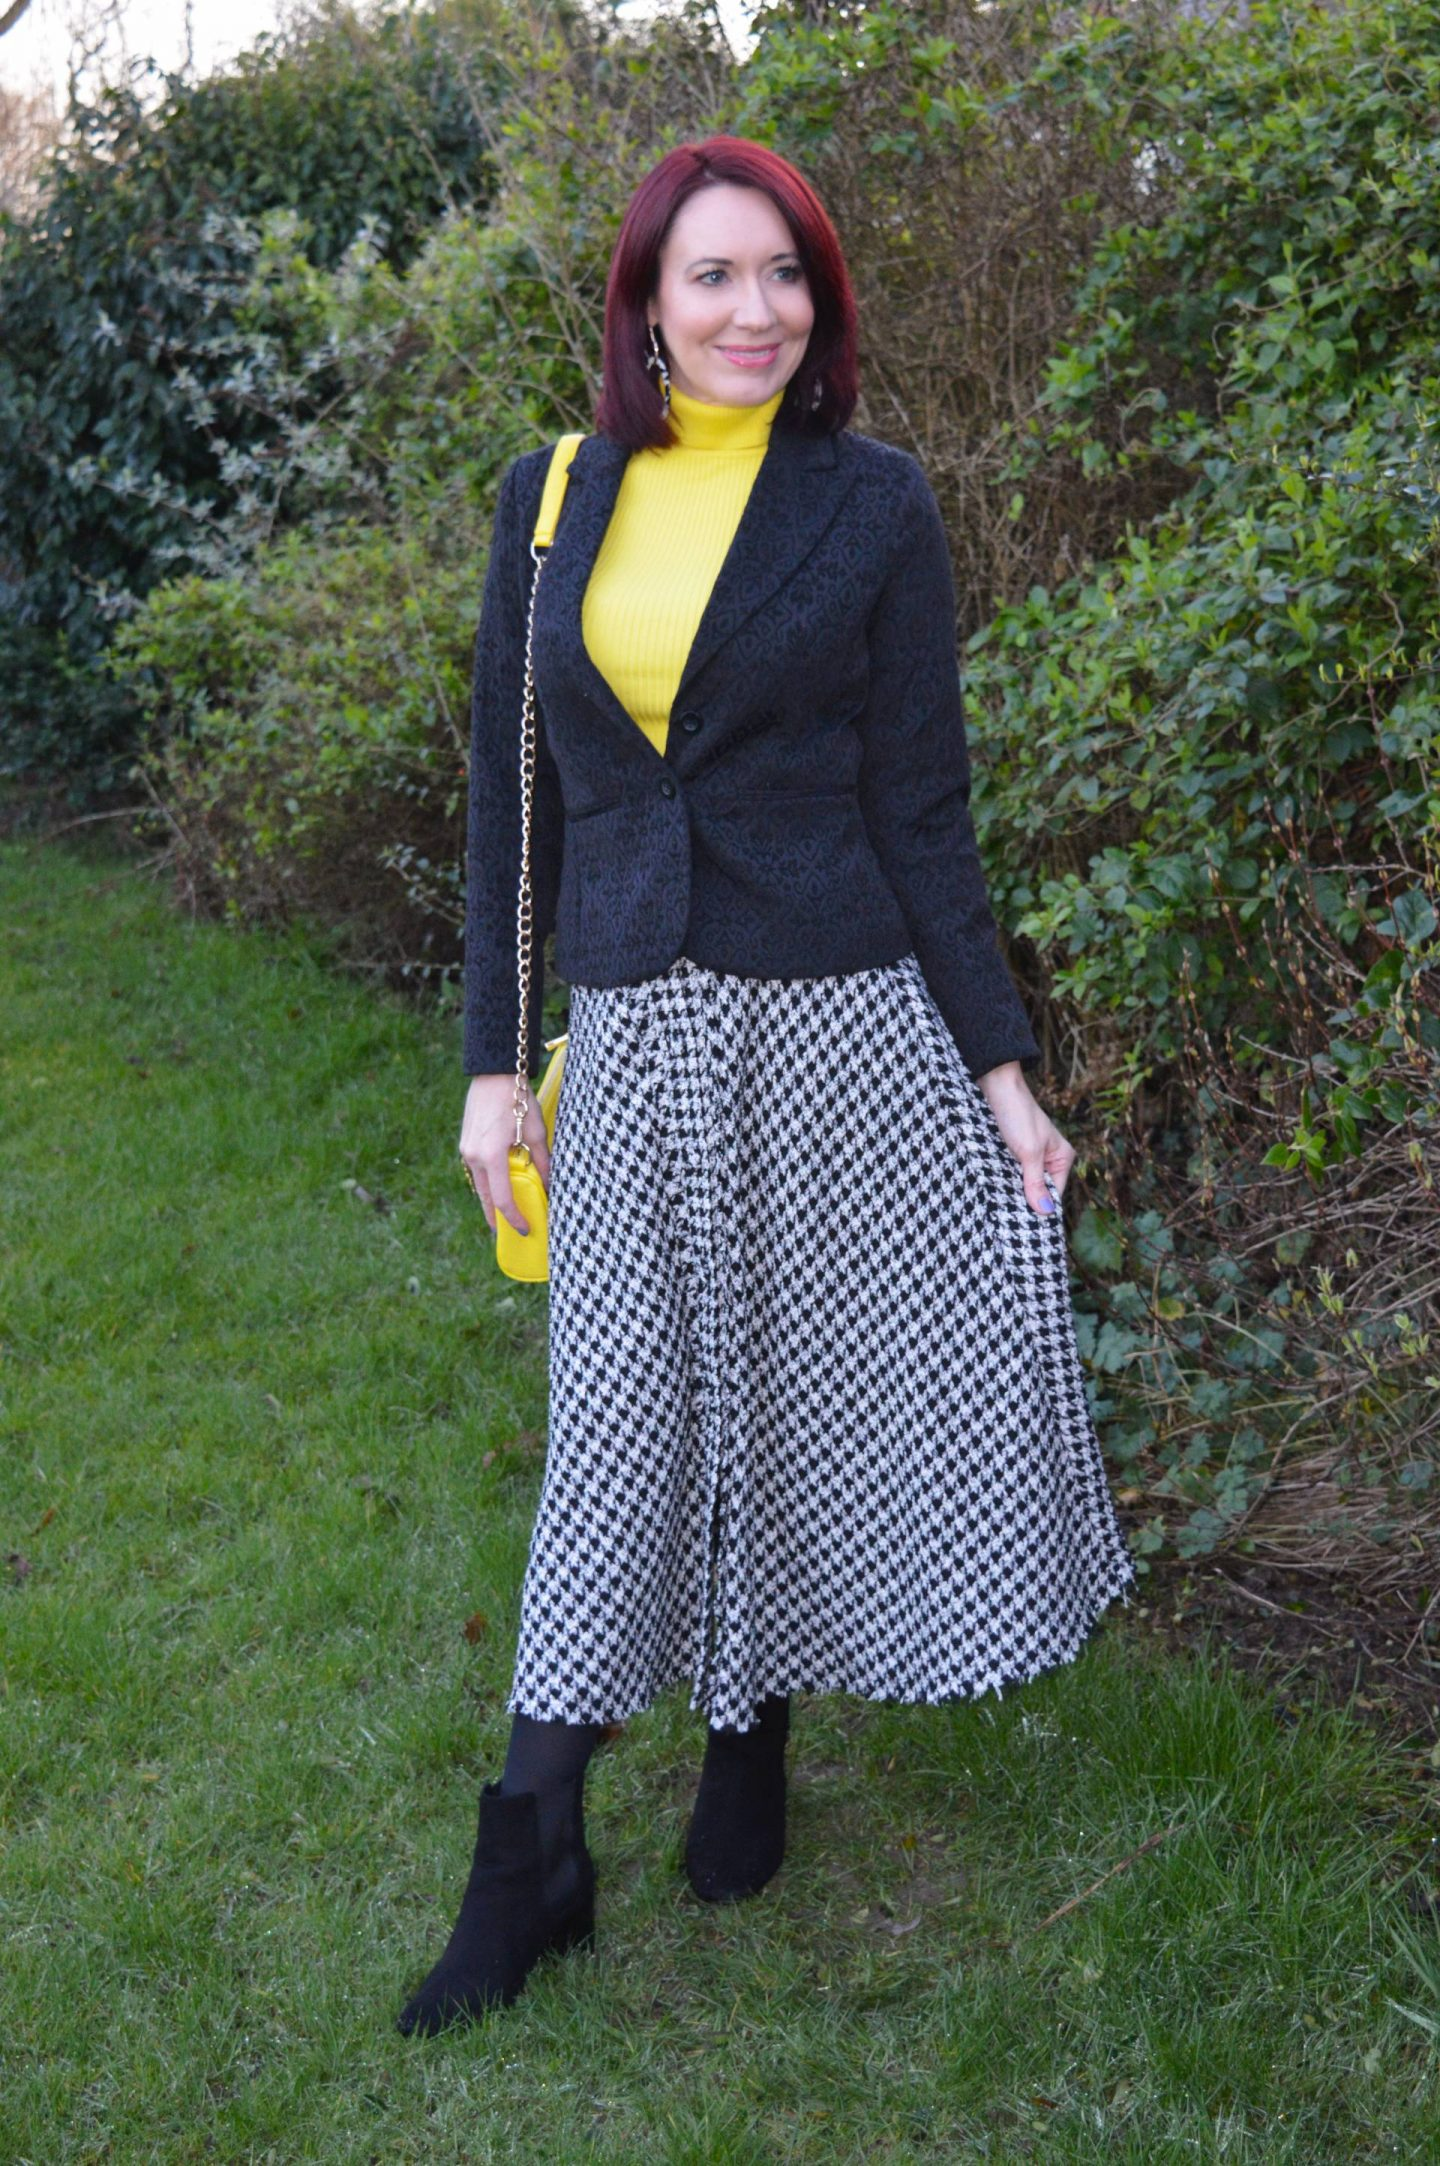 Houndstooth and Bright Yellow, Zara houndstooth skirt, New Look bright yellow roll neck jumper